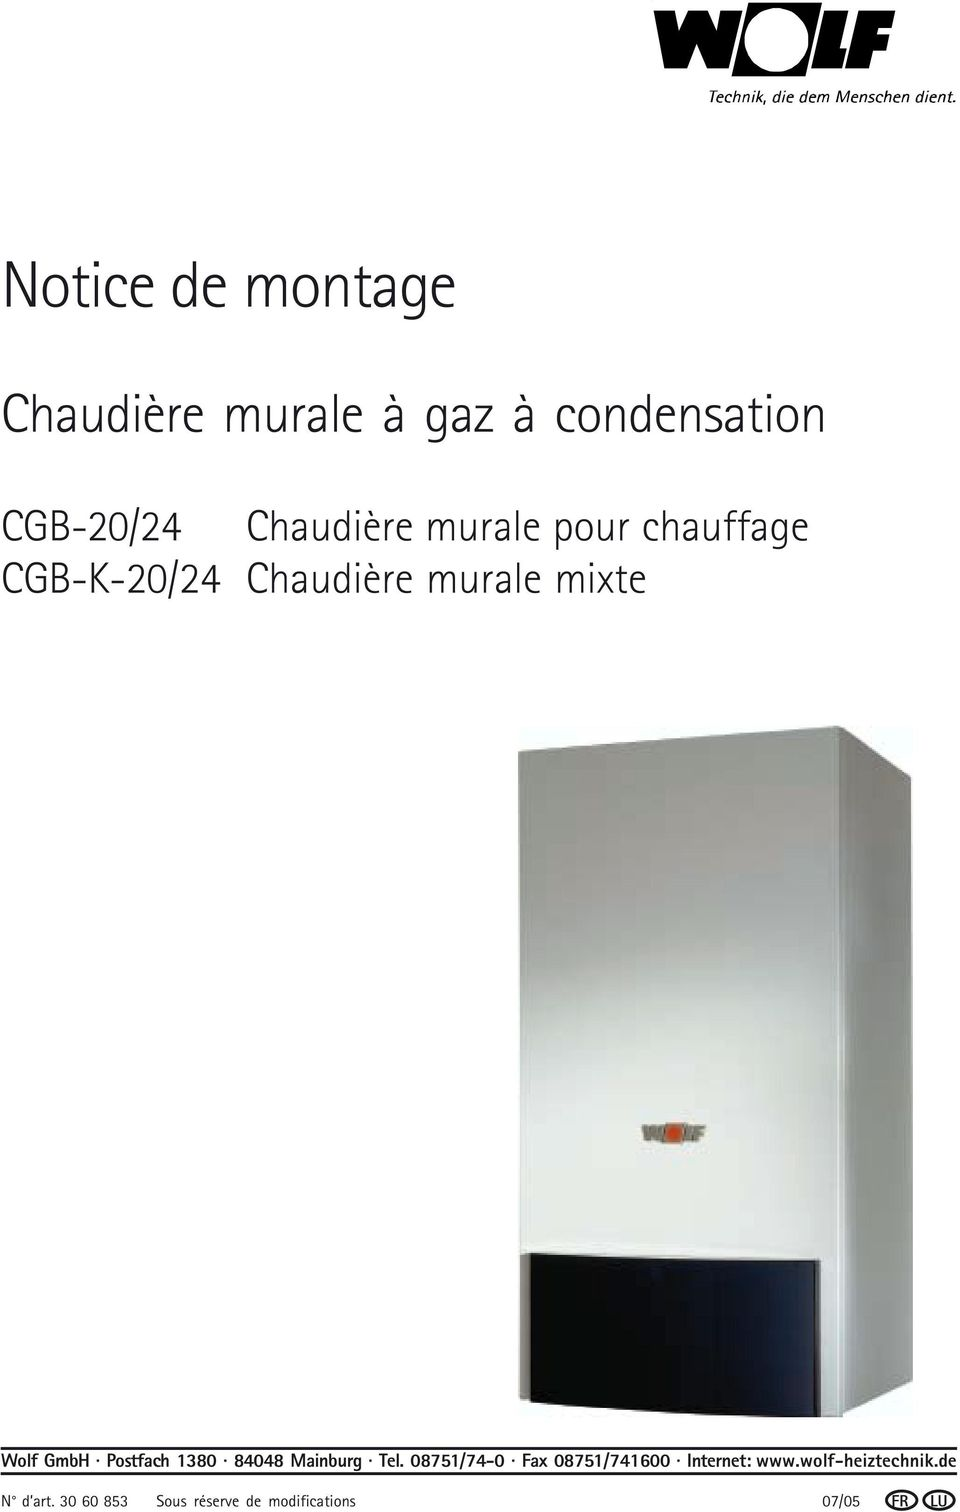 chaudi re murale gaz condensation cgb 20 24 chaudi re murale pour chauffage cgb k 20 24. Black Bedroom Furniture Sets. Home Design Ideas